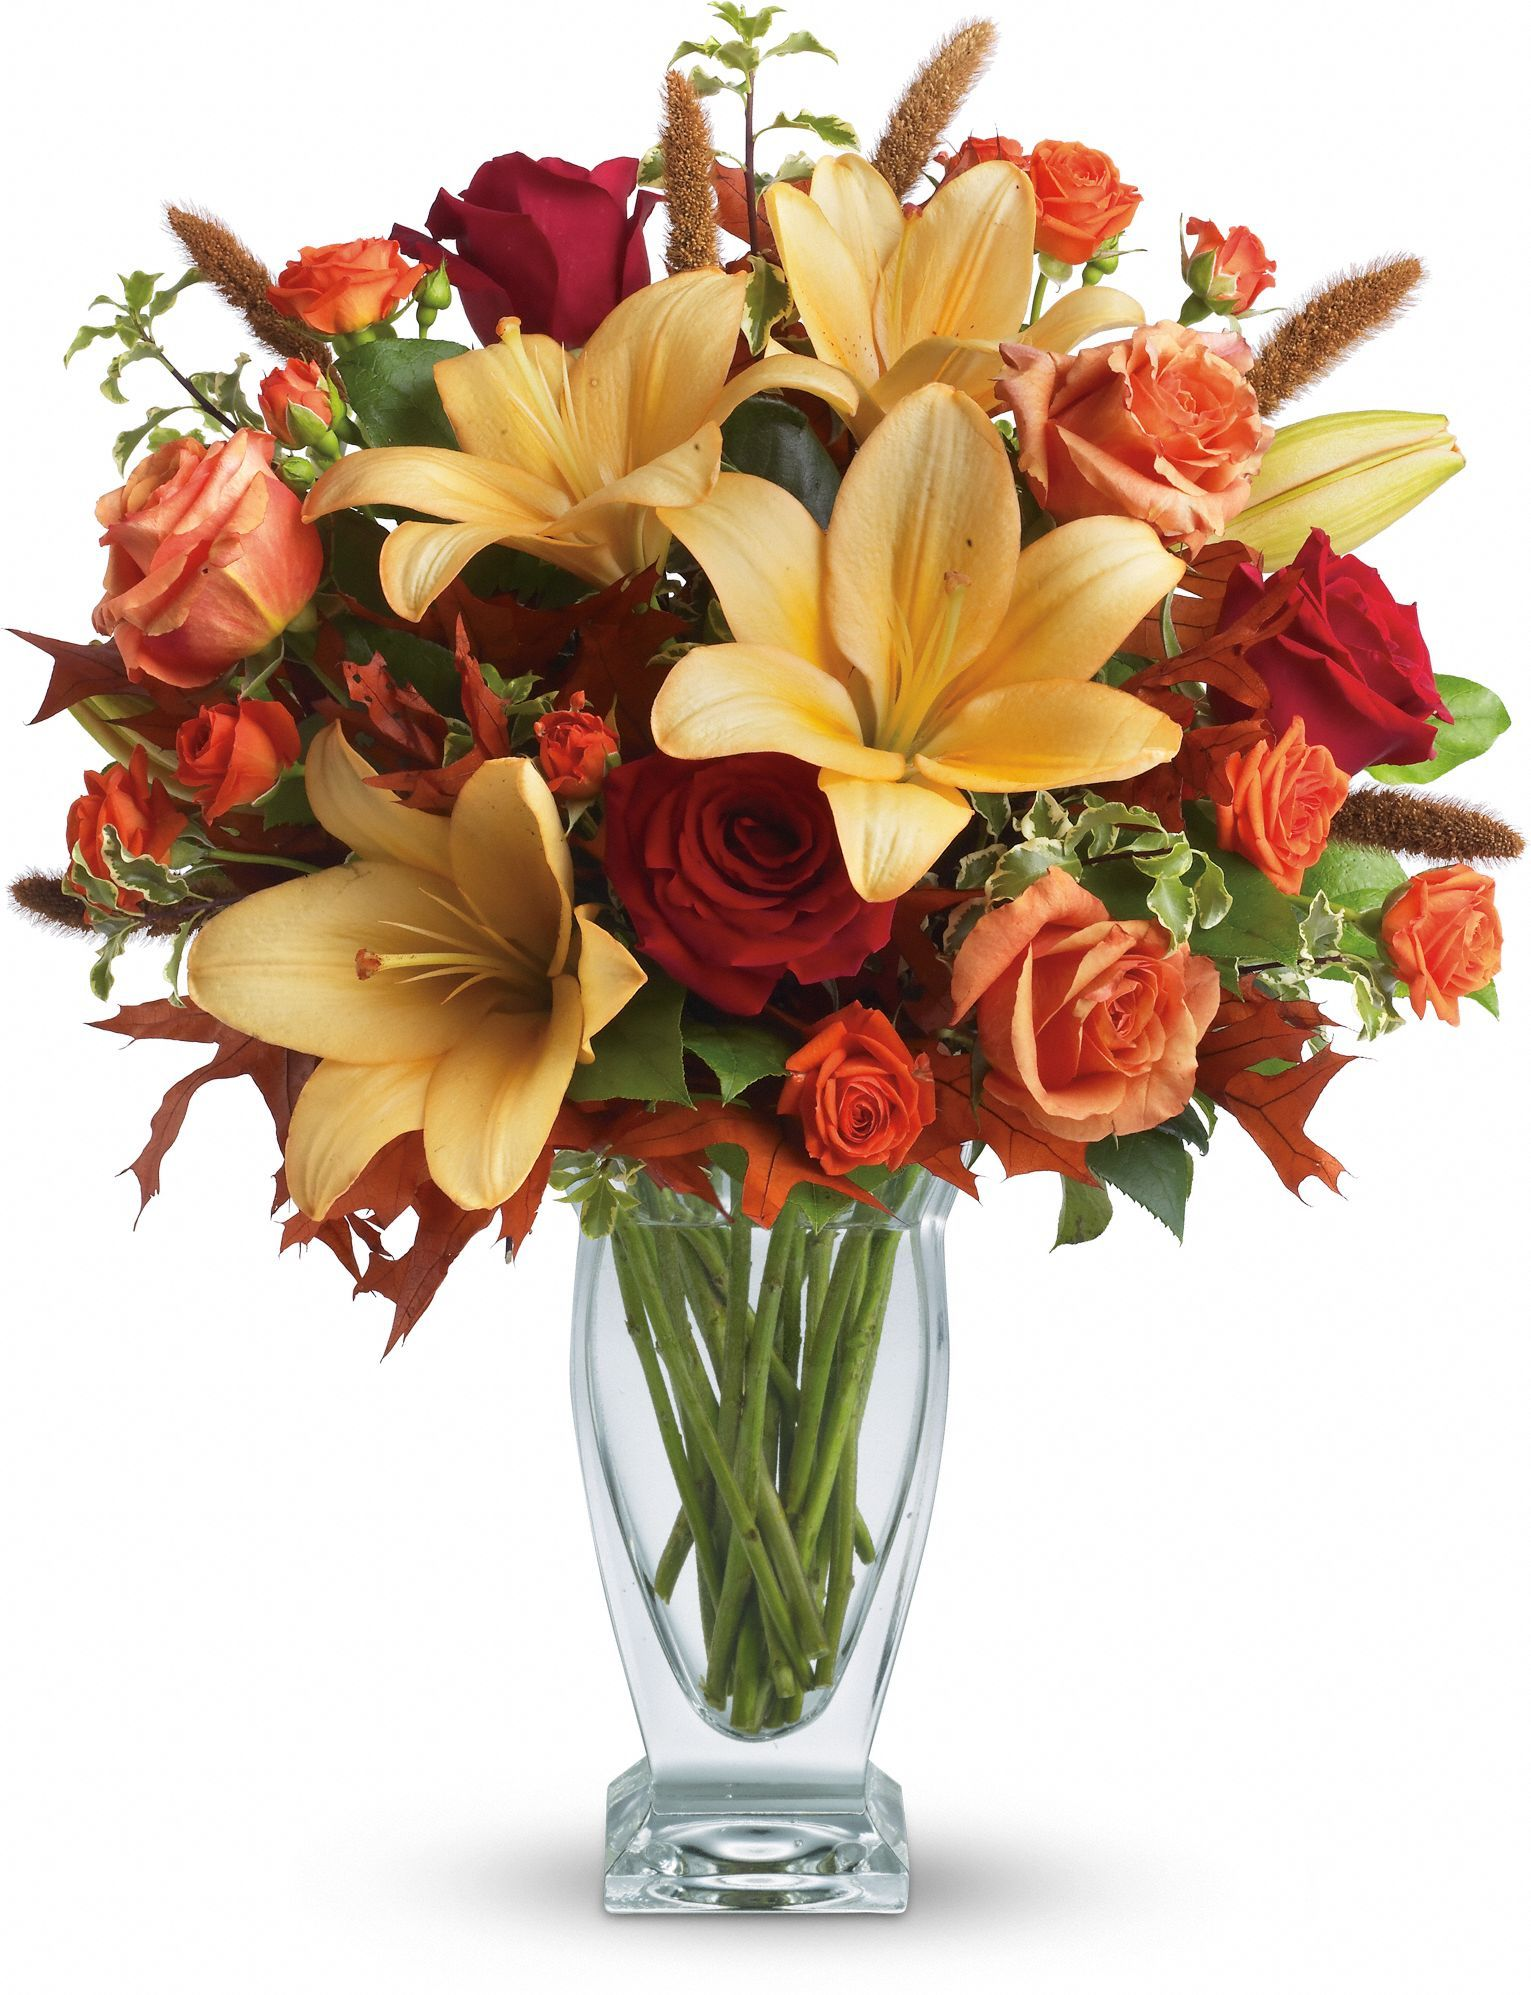 Telefloras fall fantasia bouquet fall flower arrangements telefloras fall fantasia bouquet izmirmasajfo